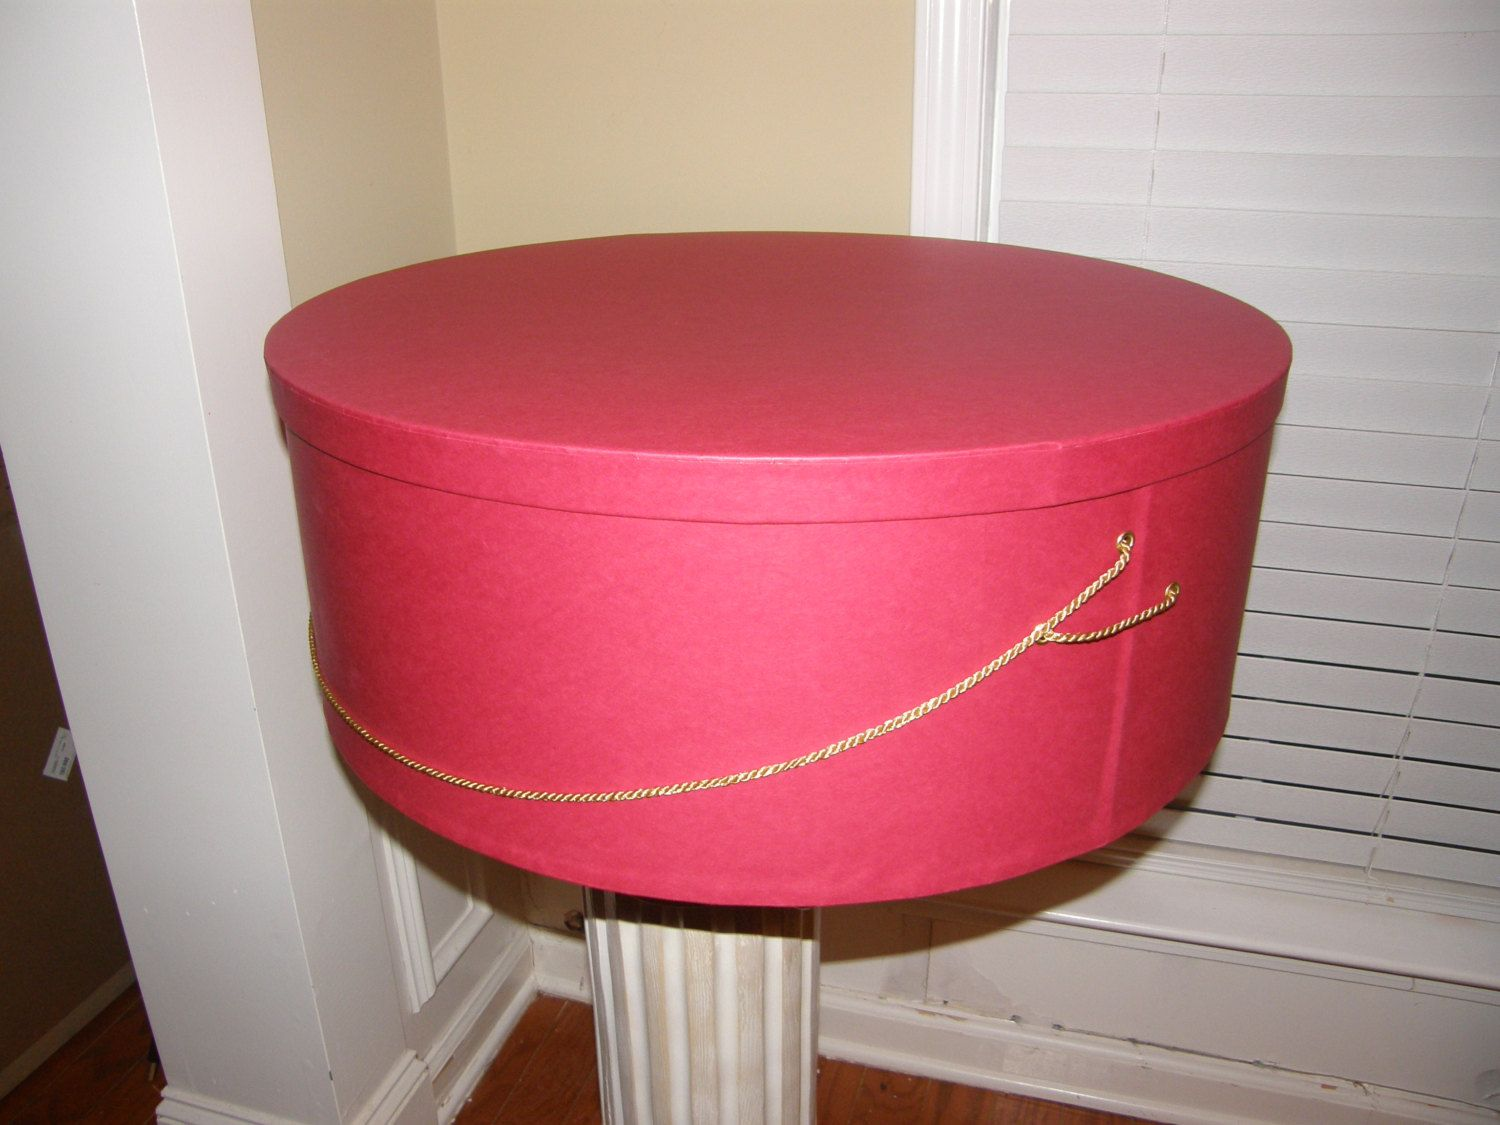 Where can you buy a 24 inch hat box?